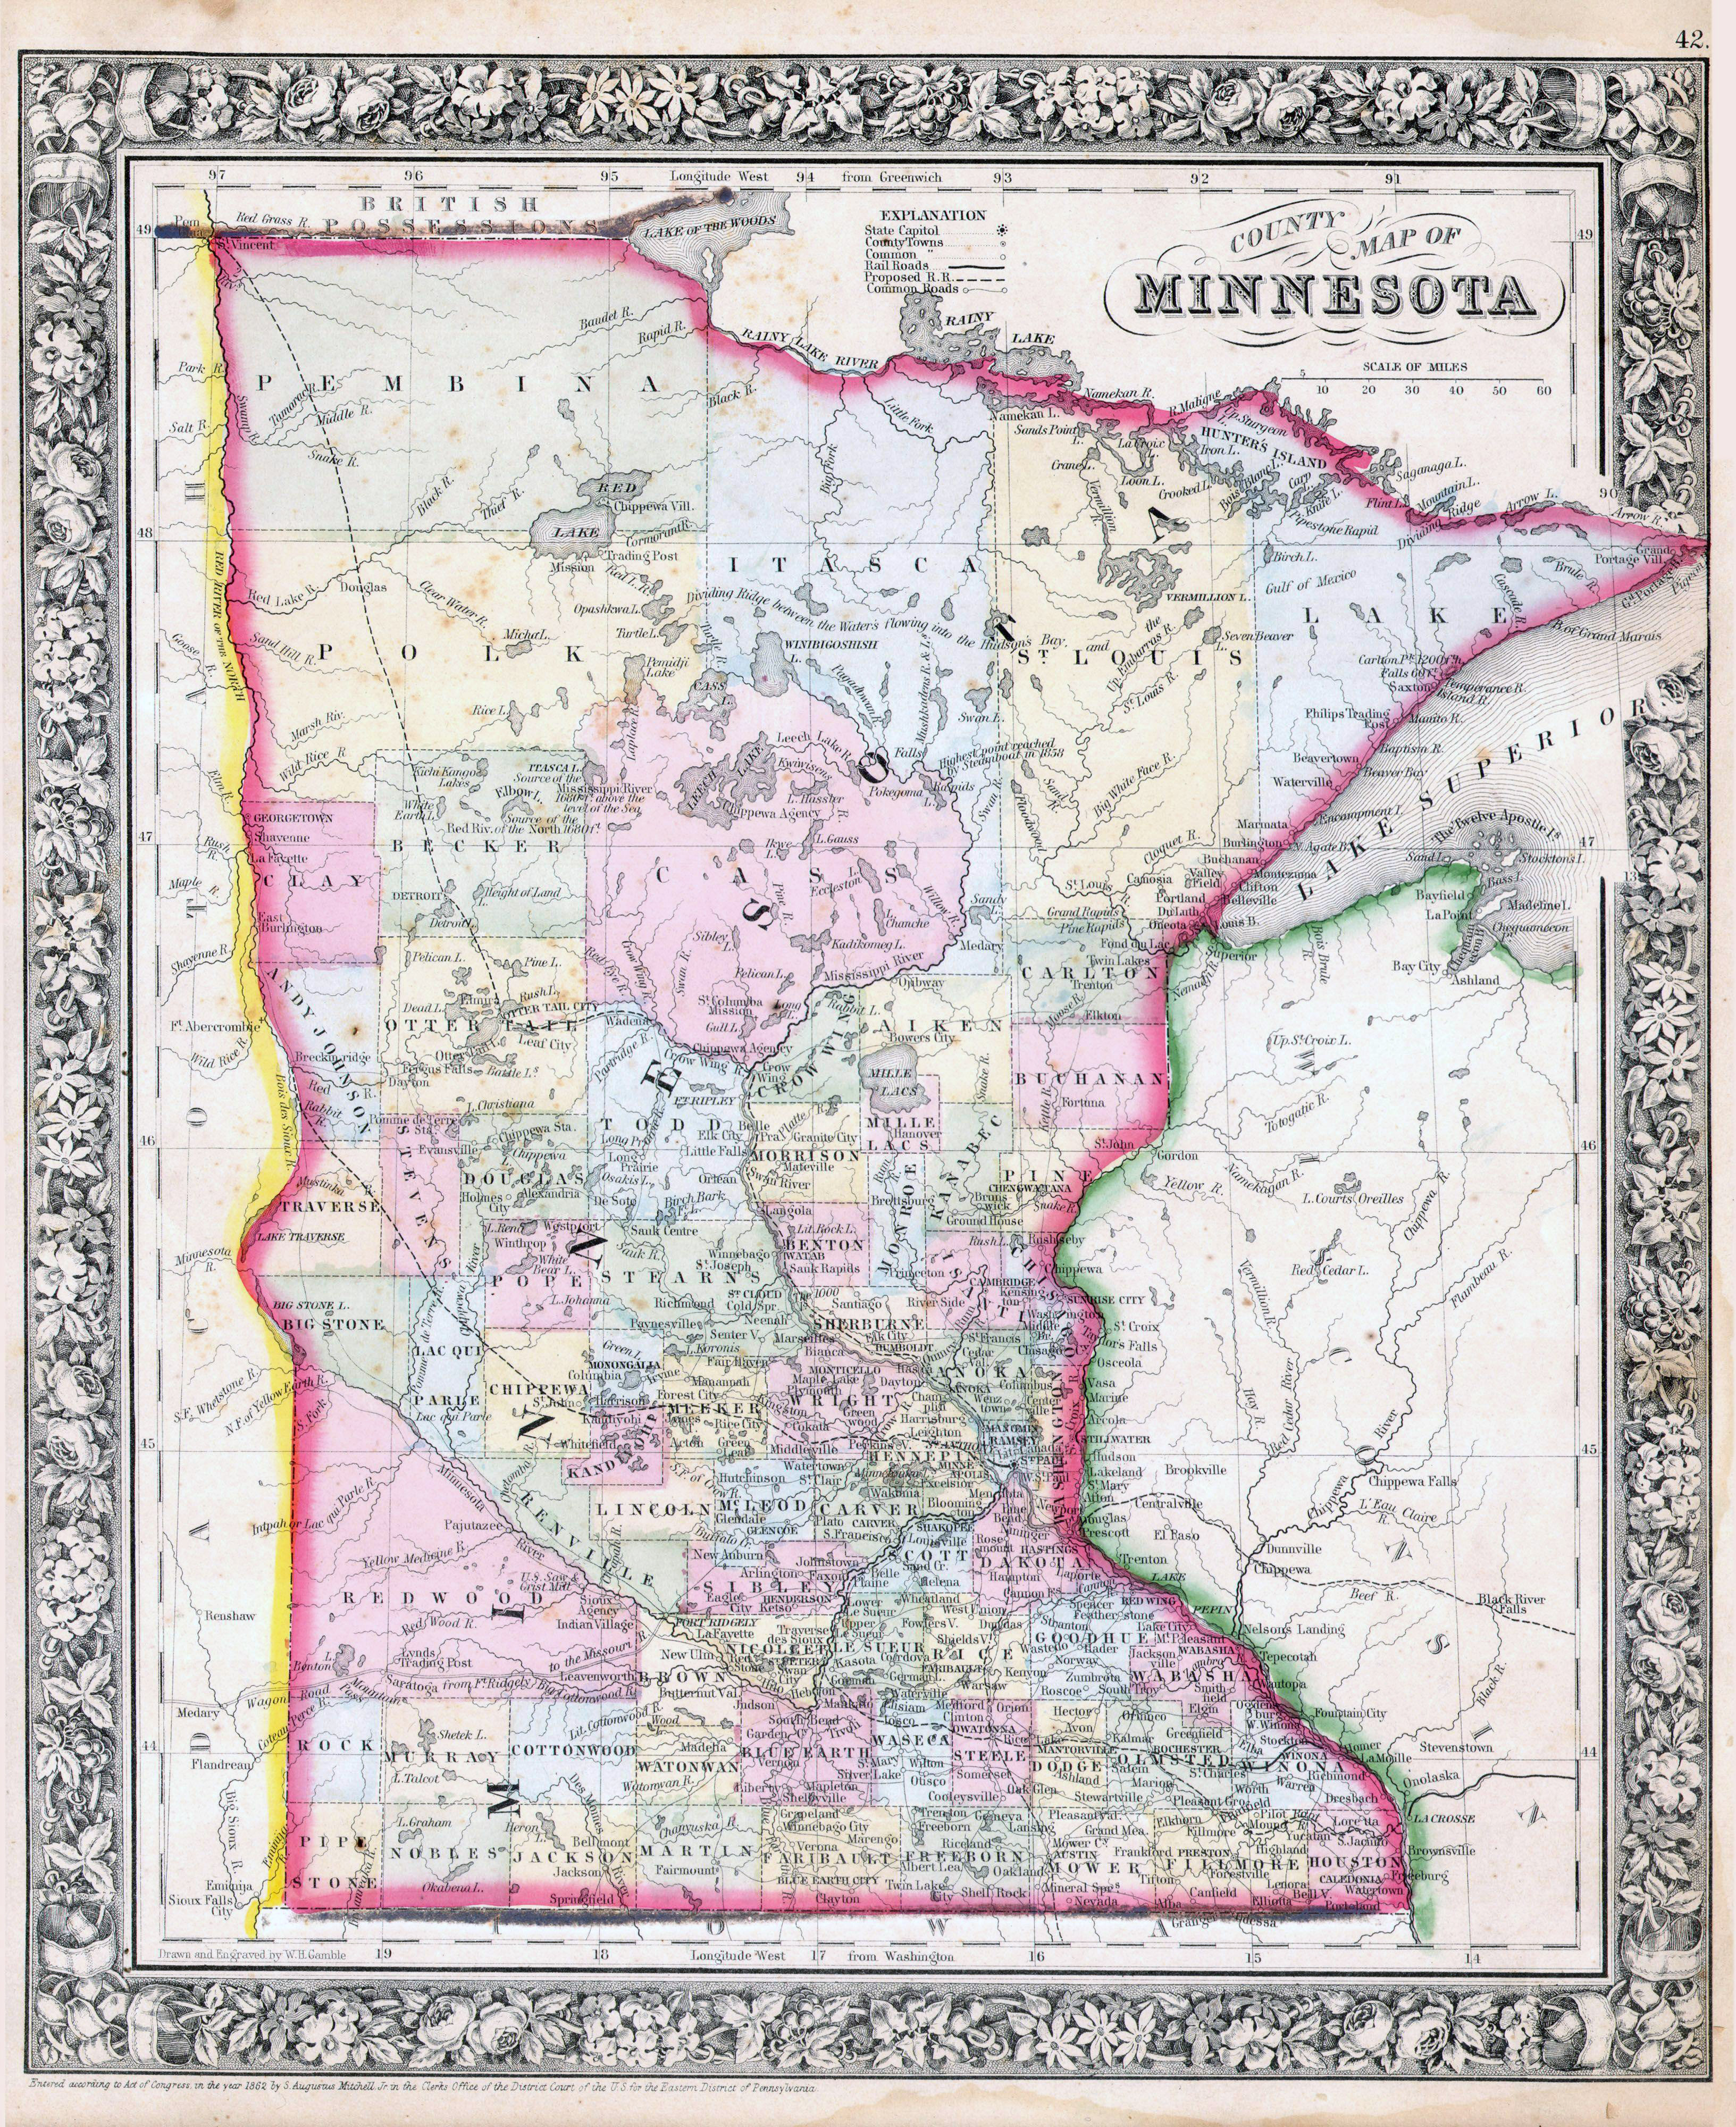 Large Detailed Old Administrative Map Of Minnesota State - State of mn map